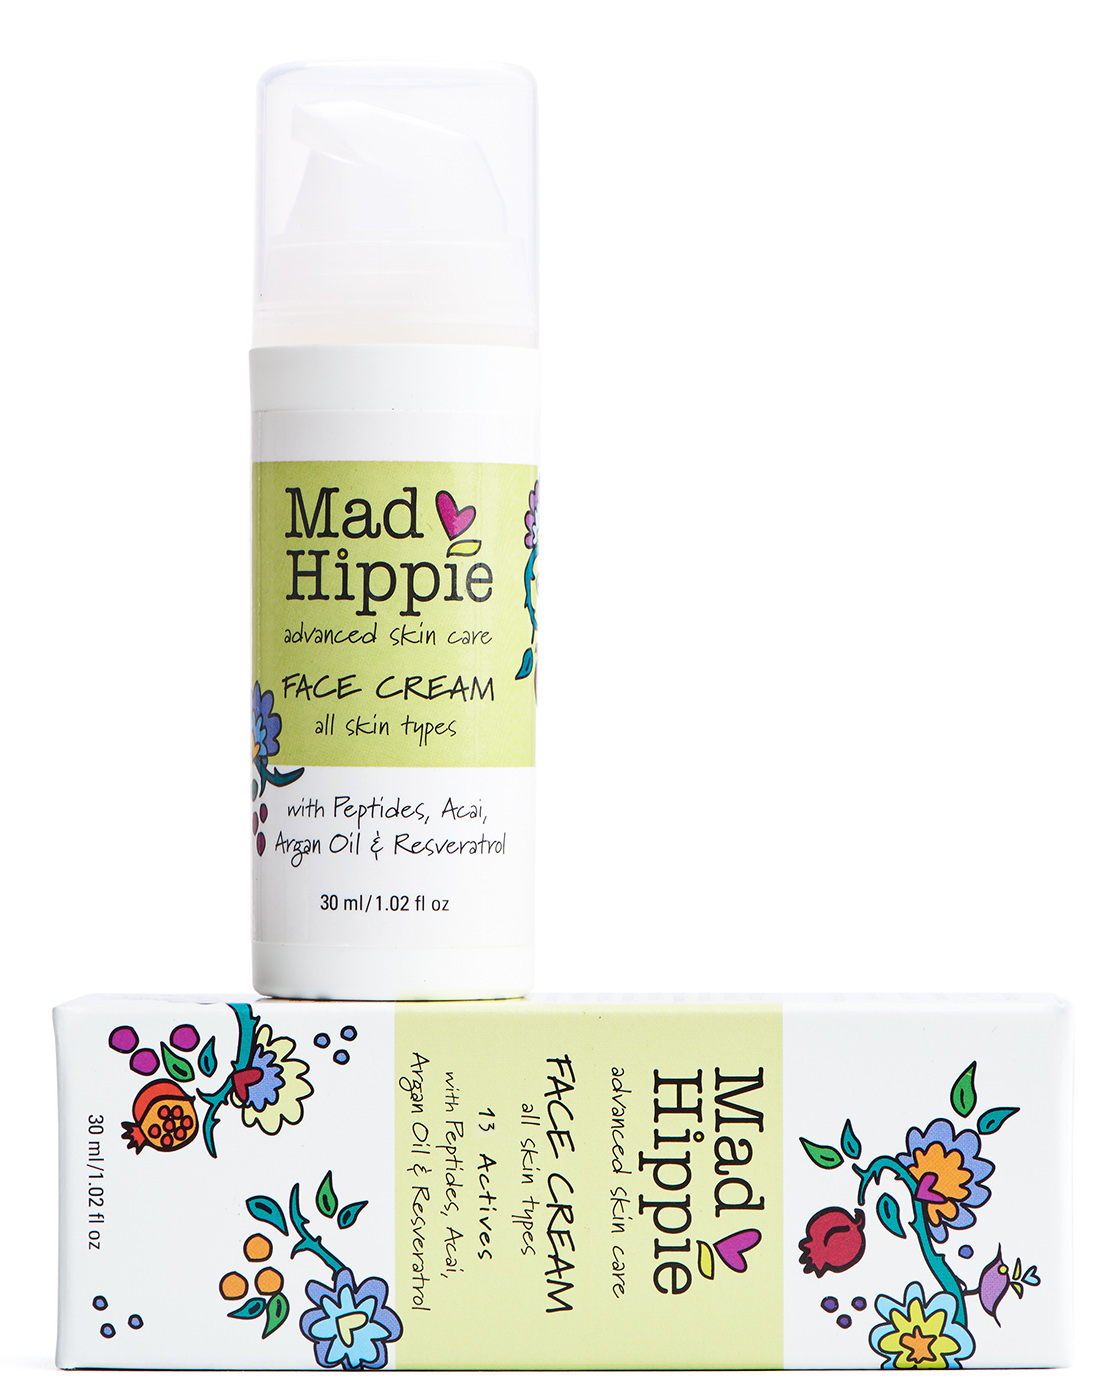 Mad Hippie - Main Product Images - Face Cream.jpg